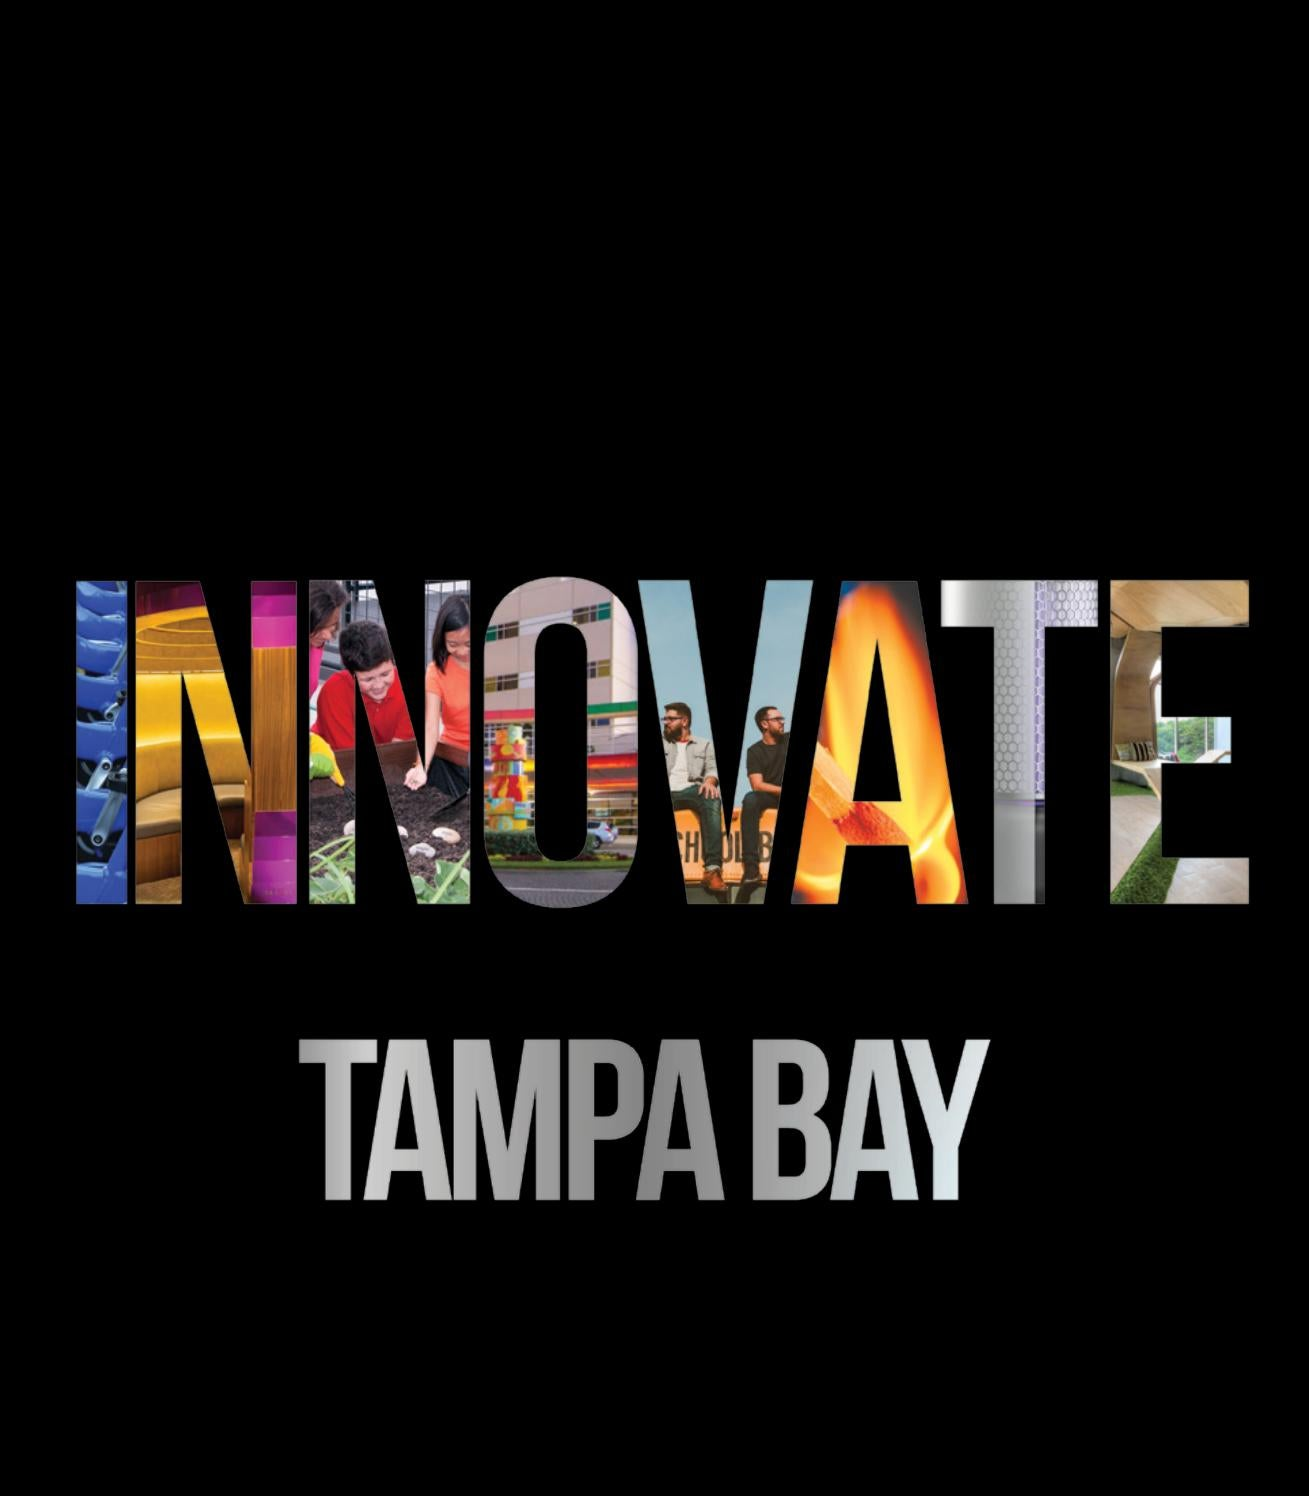 Innovate Tampa Bay 1 Final By Sven Boermeester Issuu Power Pcb Circuit Board For The Welbilt Bread Maker Machine Model